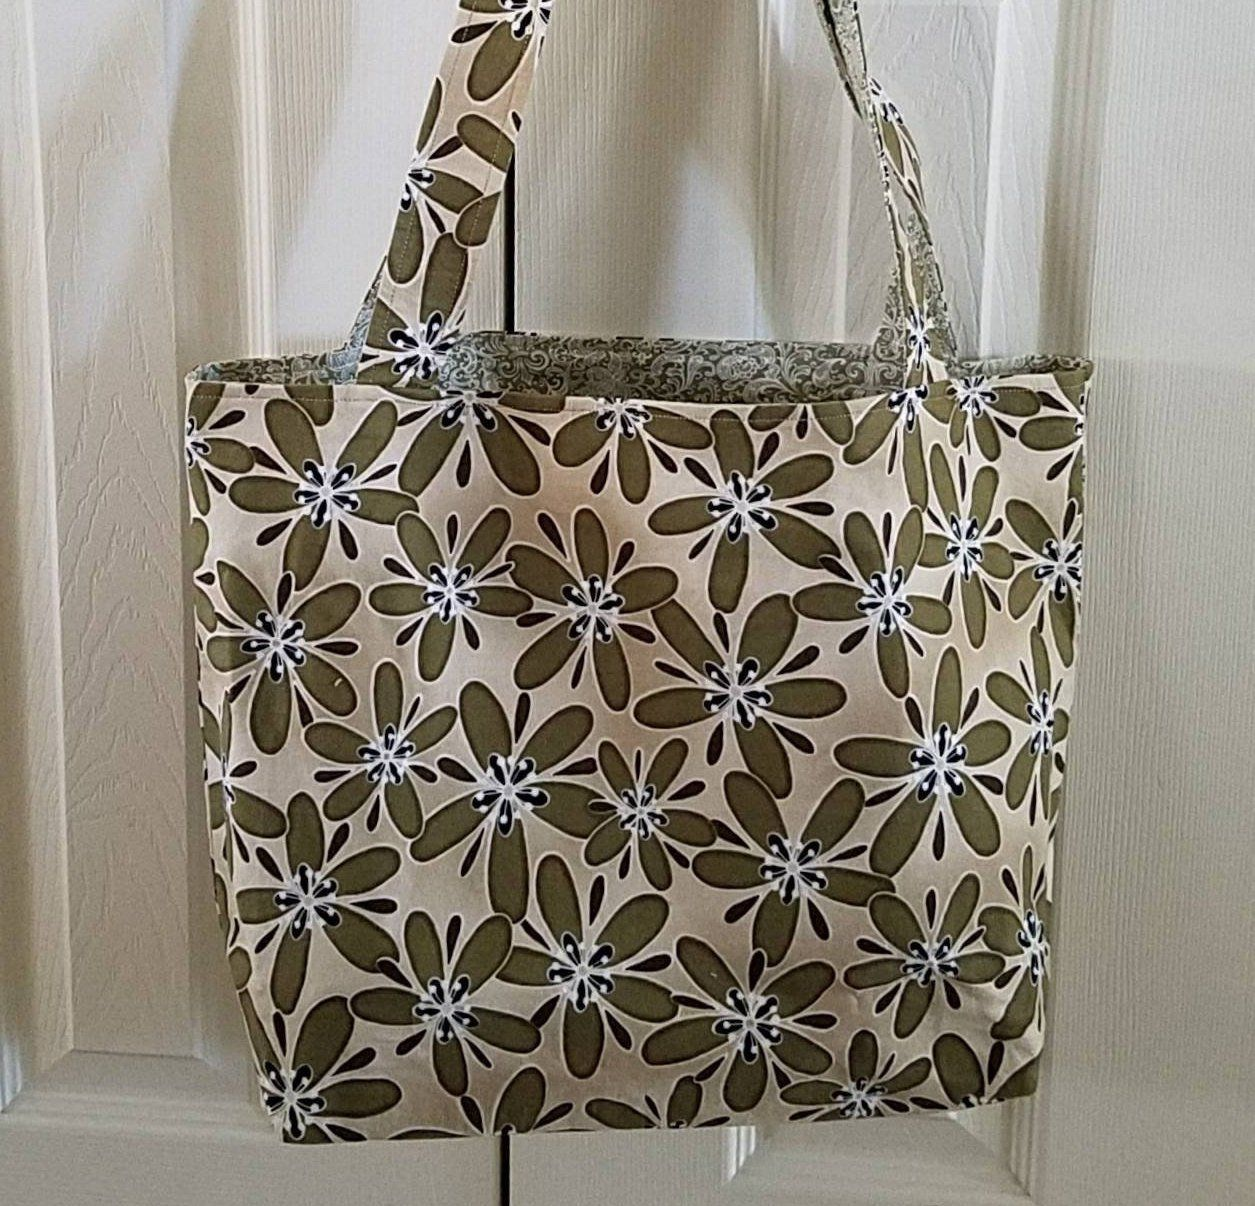 0b62696d73ec Market tote bag reusable shopping bag grocery bag tote handmade travel bag  olive green beige modern carryall floral fabric tote eco friendly by ...